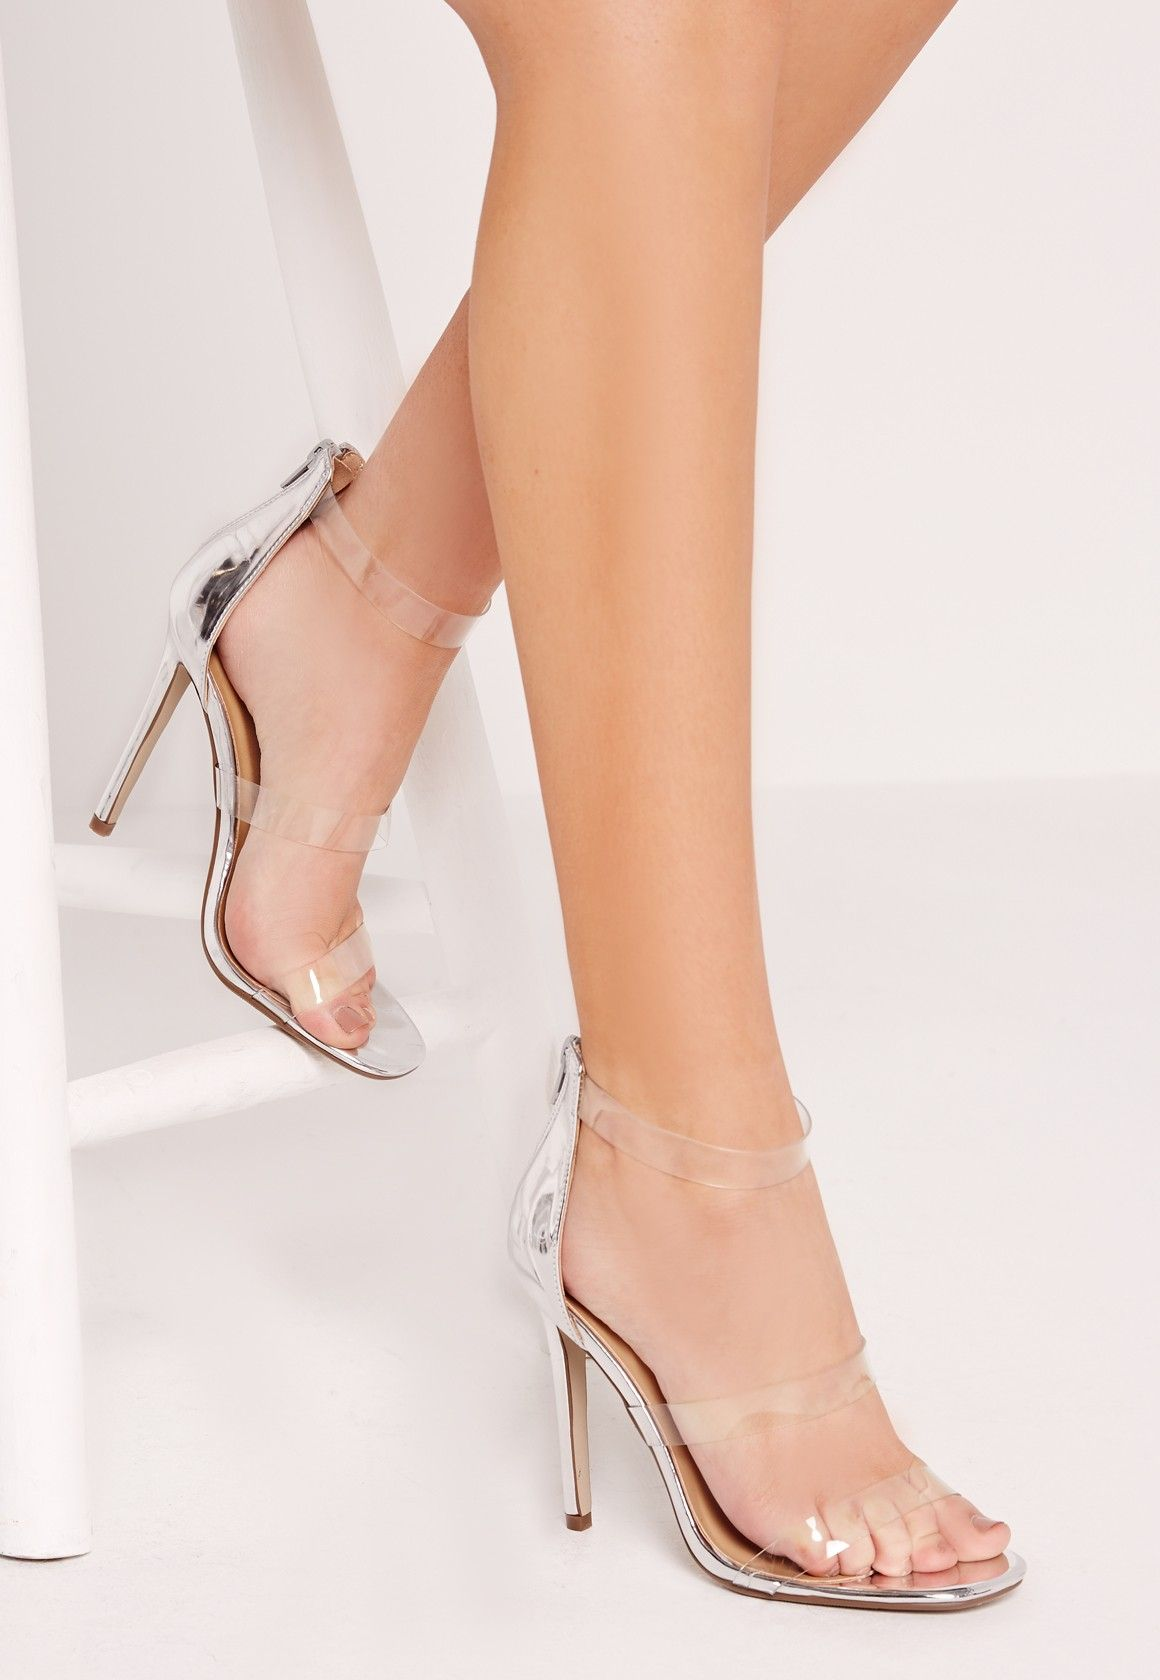 594d07579e5 Missguided - Perspex 3 Strap Barely There Heeled Sandals Silver ...